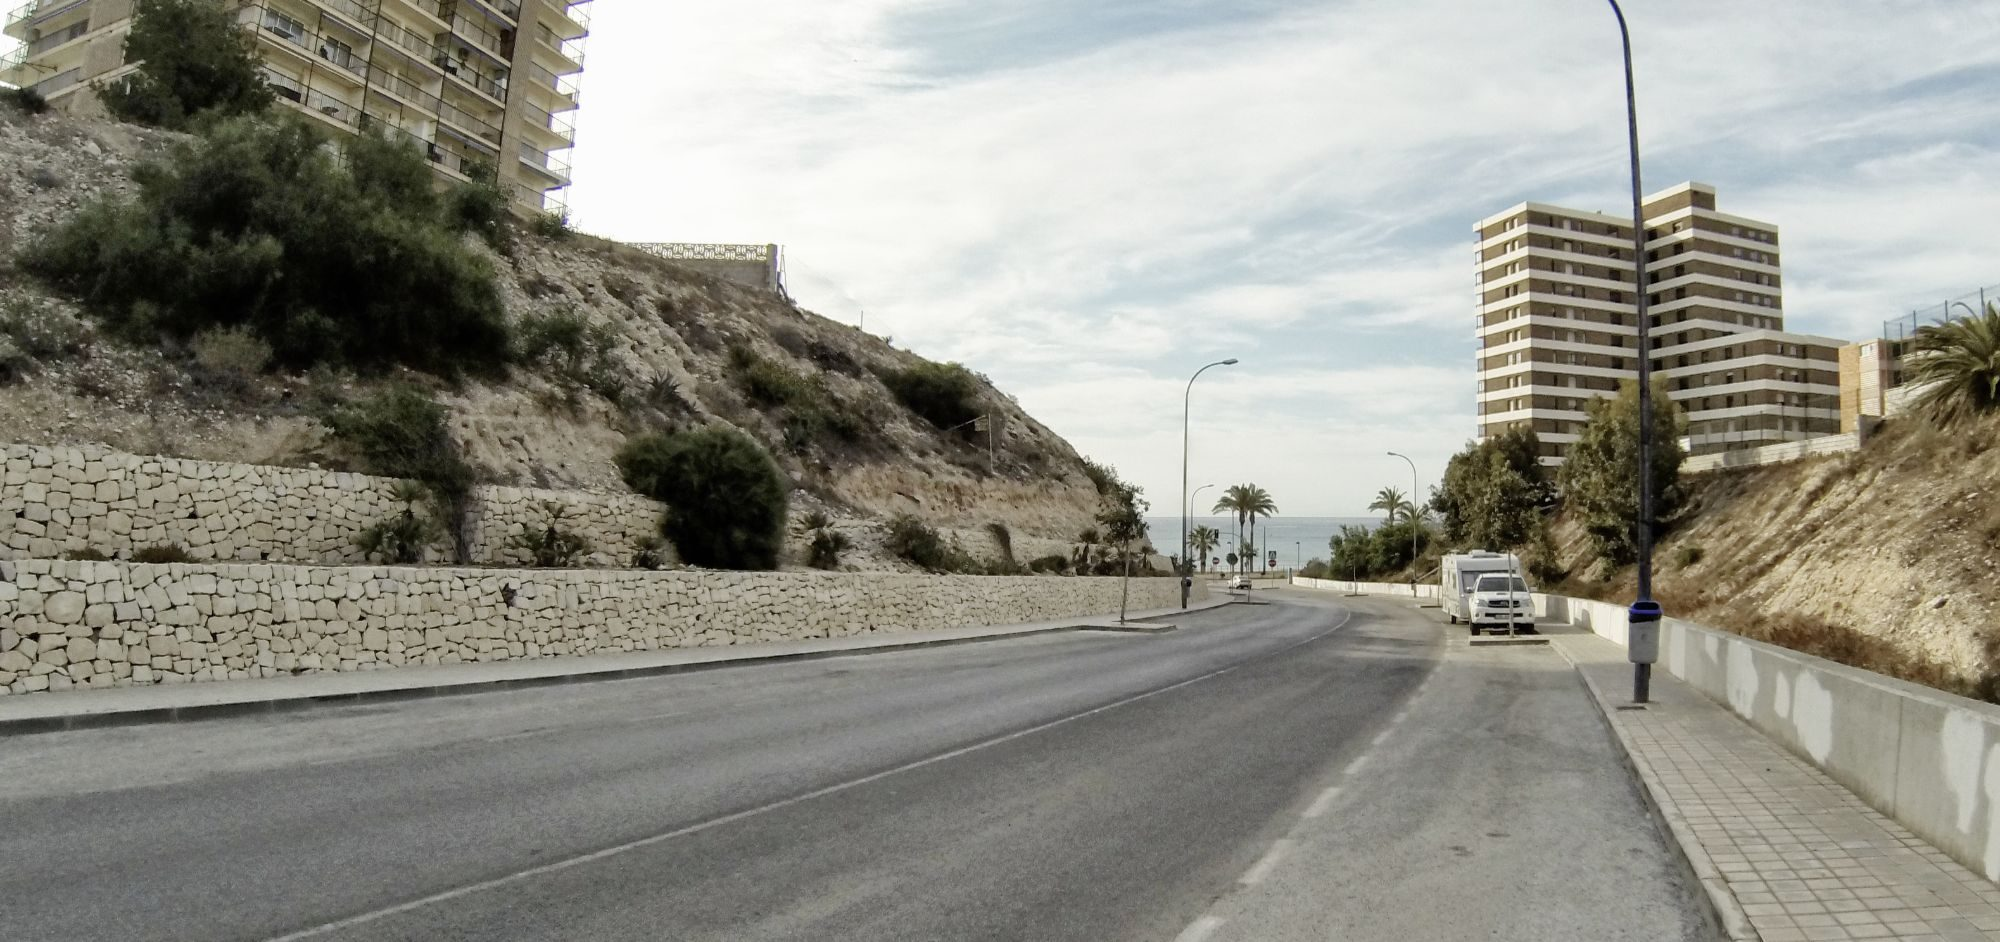 Parking at the beach in Spain